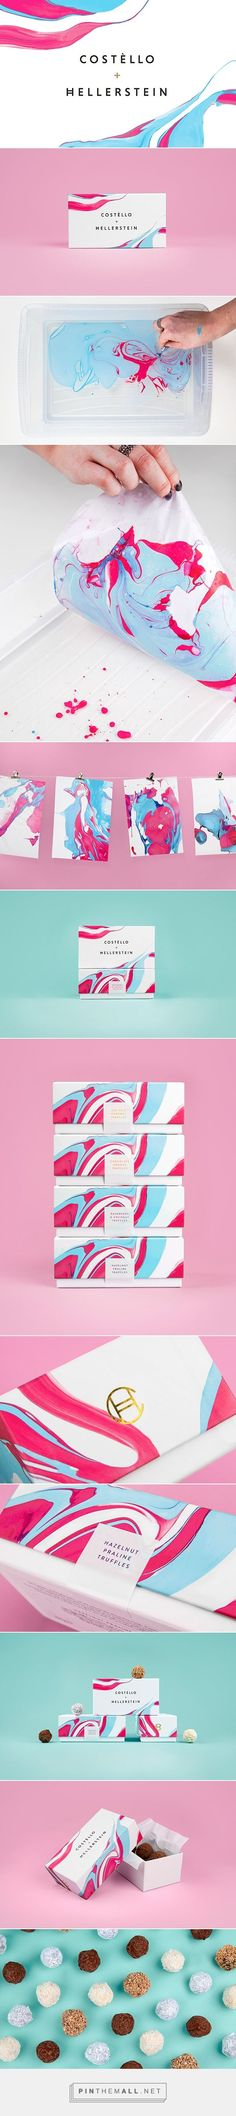 Beautiful swirl art gives this packaging by Robert Food an eye-catching splash of color!